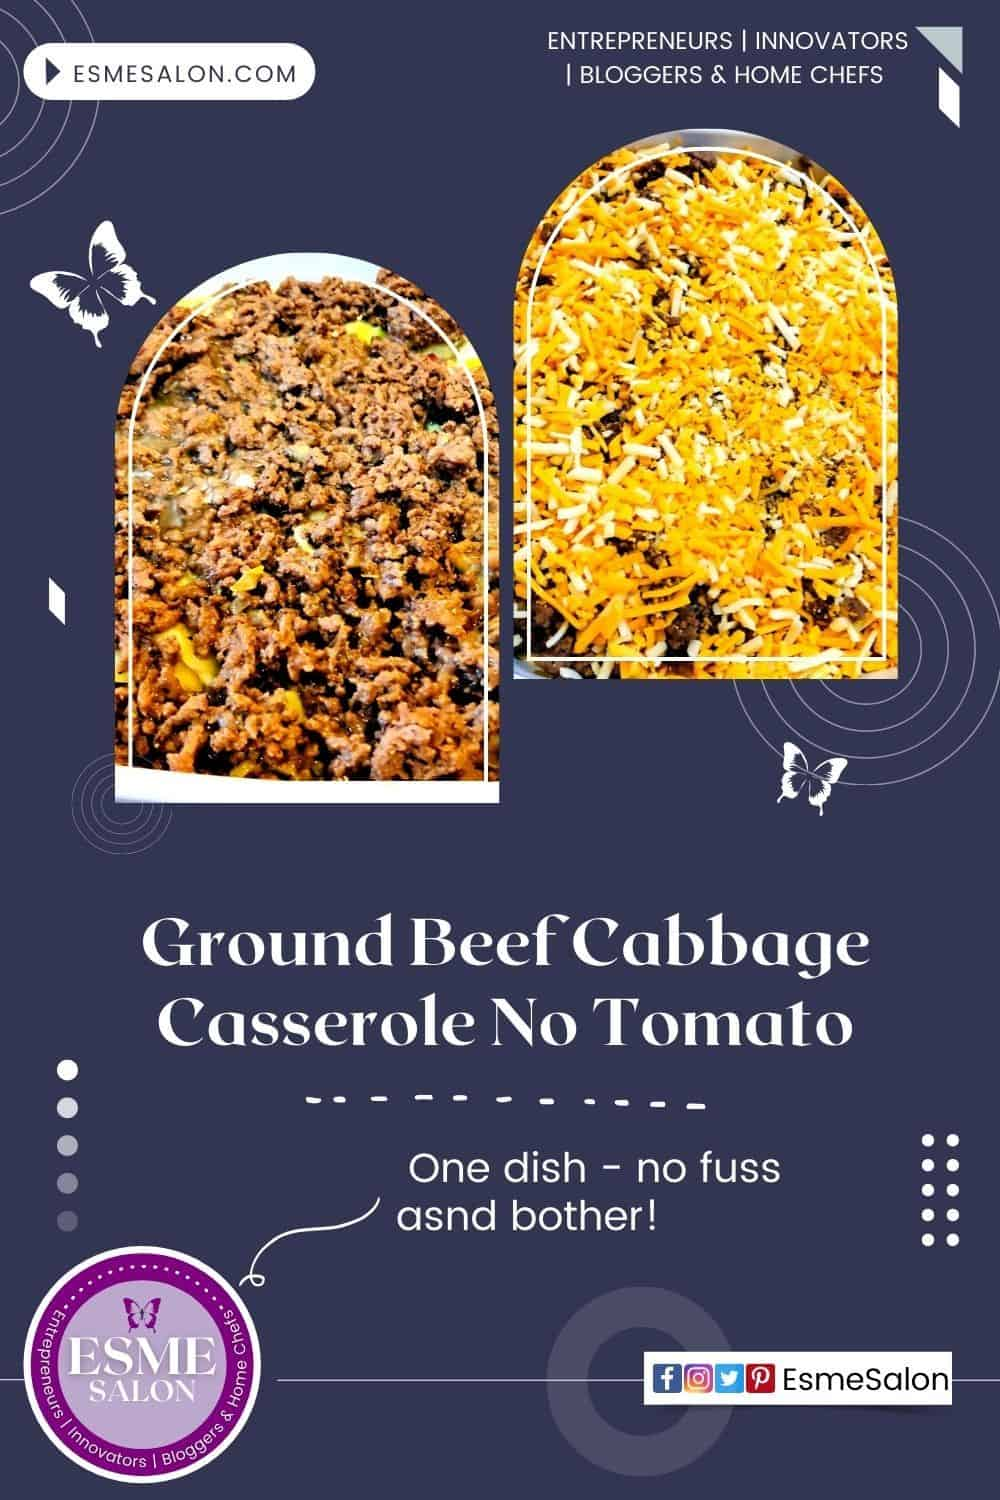 One pan Ground Beef Cabbage Casserole topped with cheese